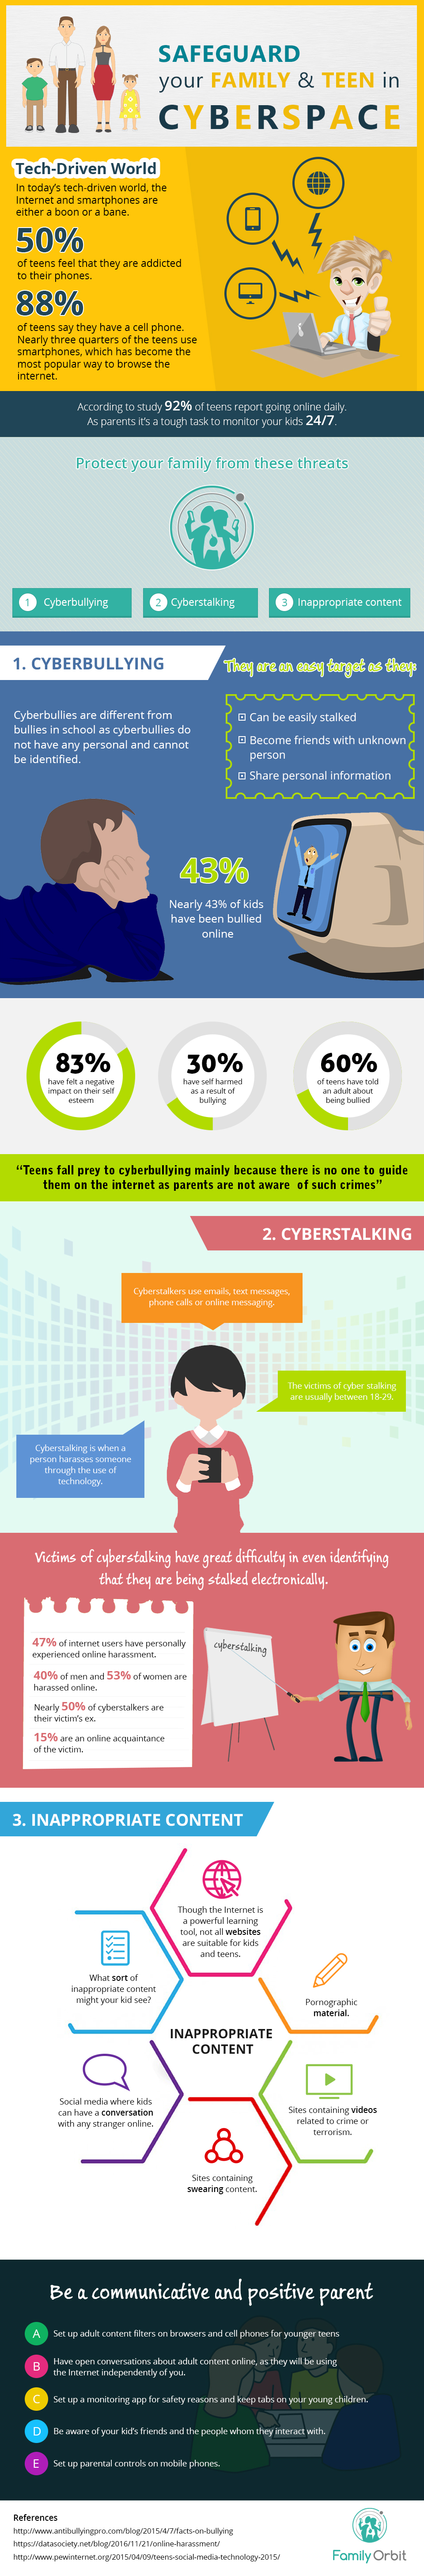 A-B-C-D-E: The Alphabet Strategy for Ensuring Your Family's Safety in Cyberspace - Infographic